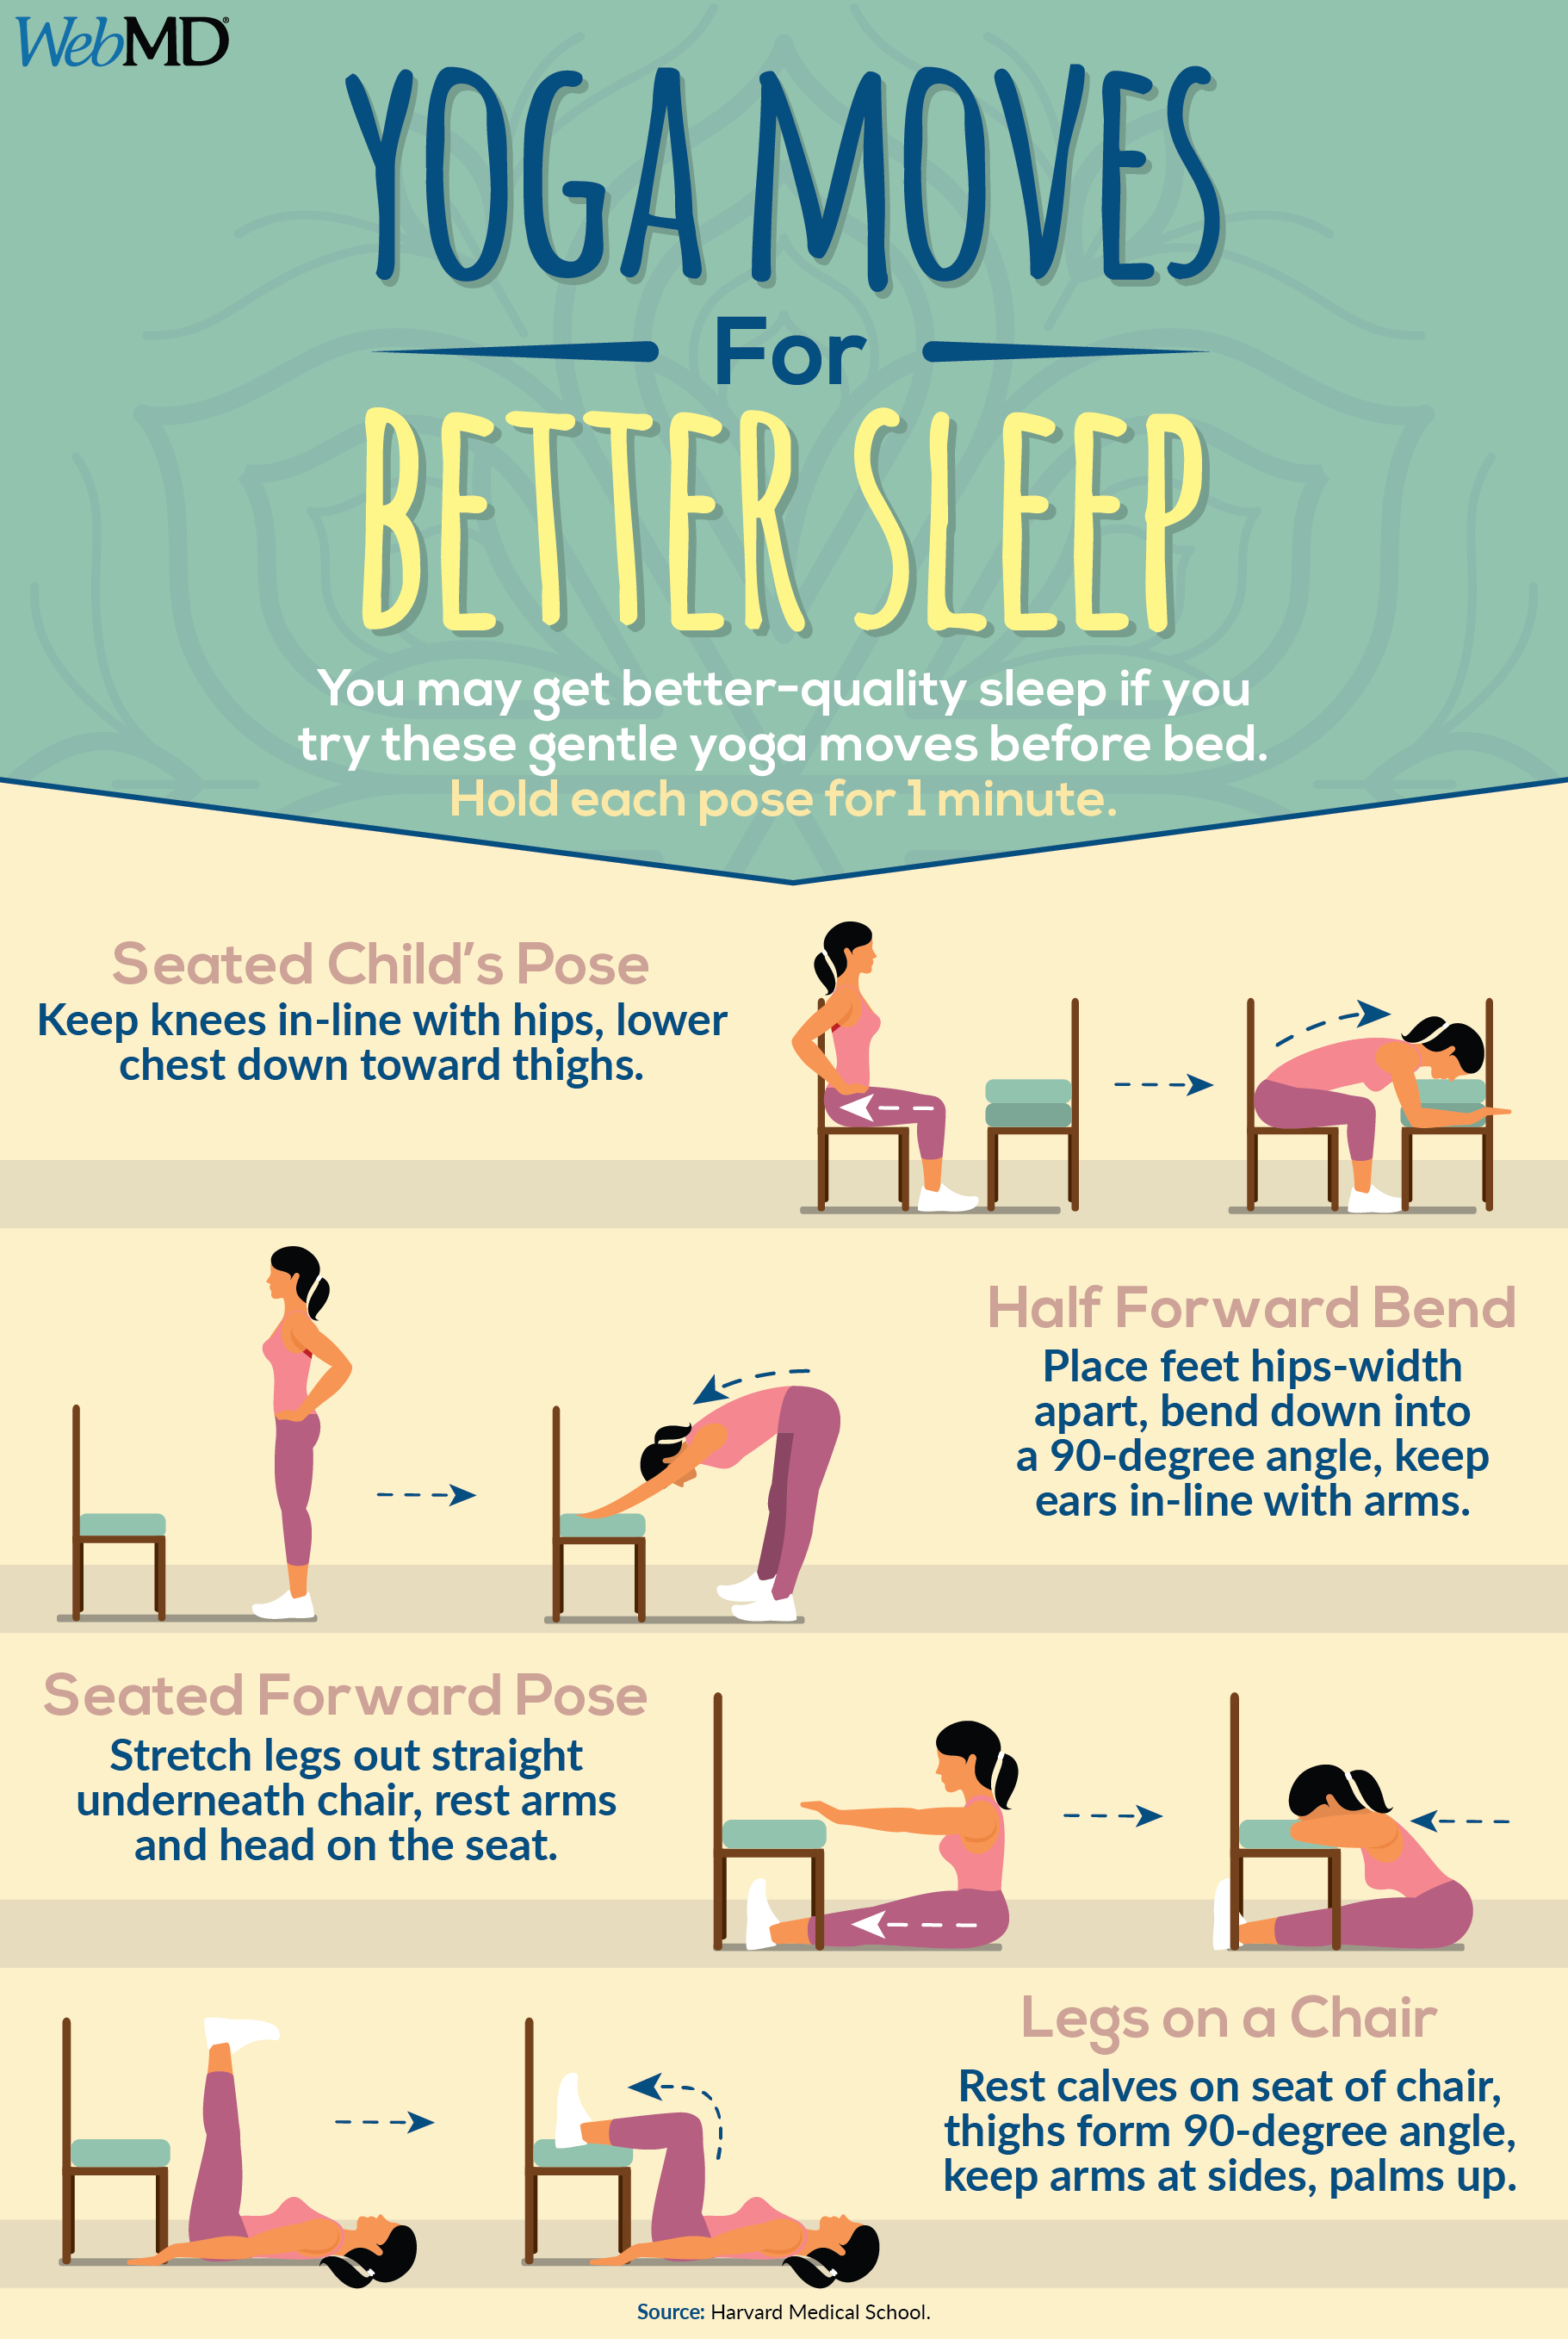 You may get better-quality sleep if you try these gentle yoga